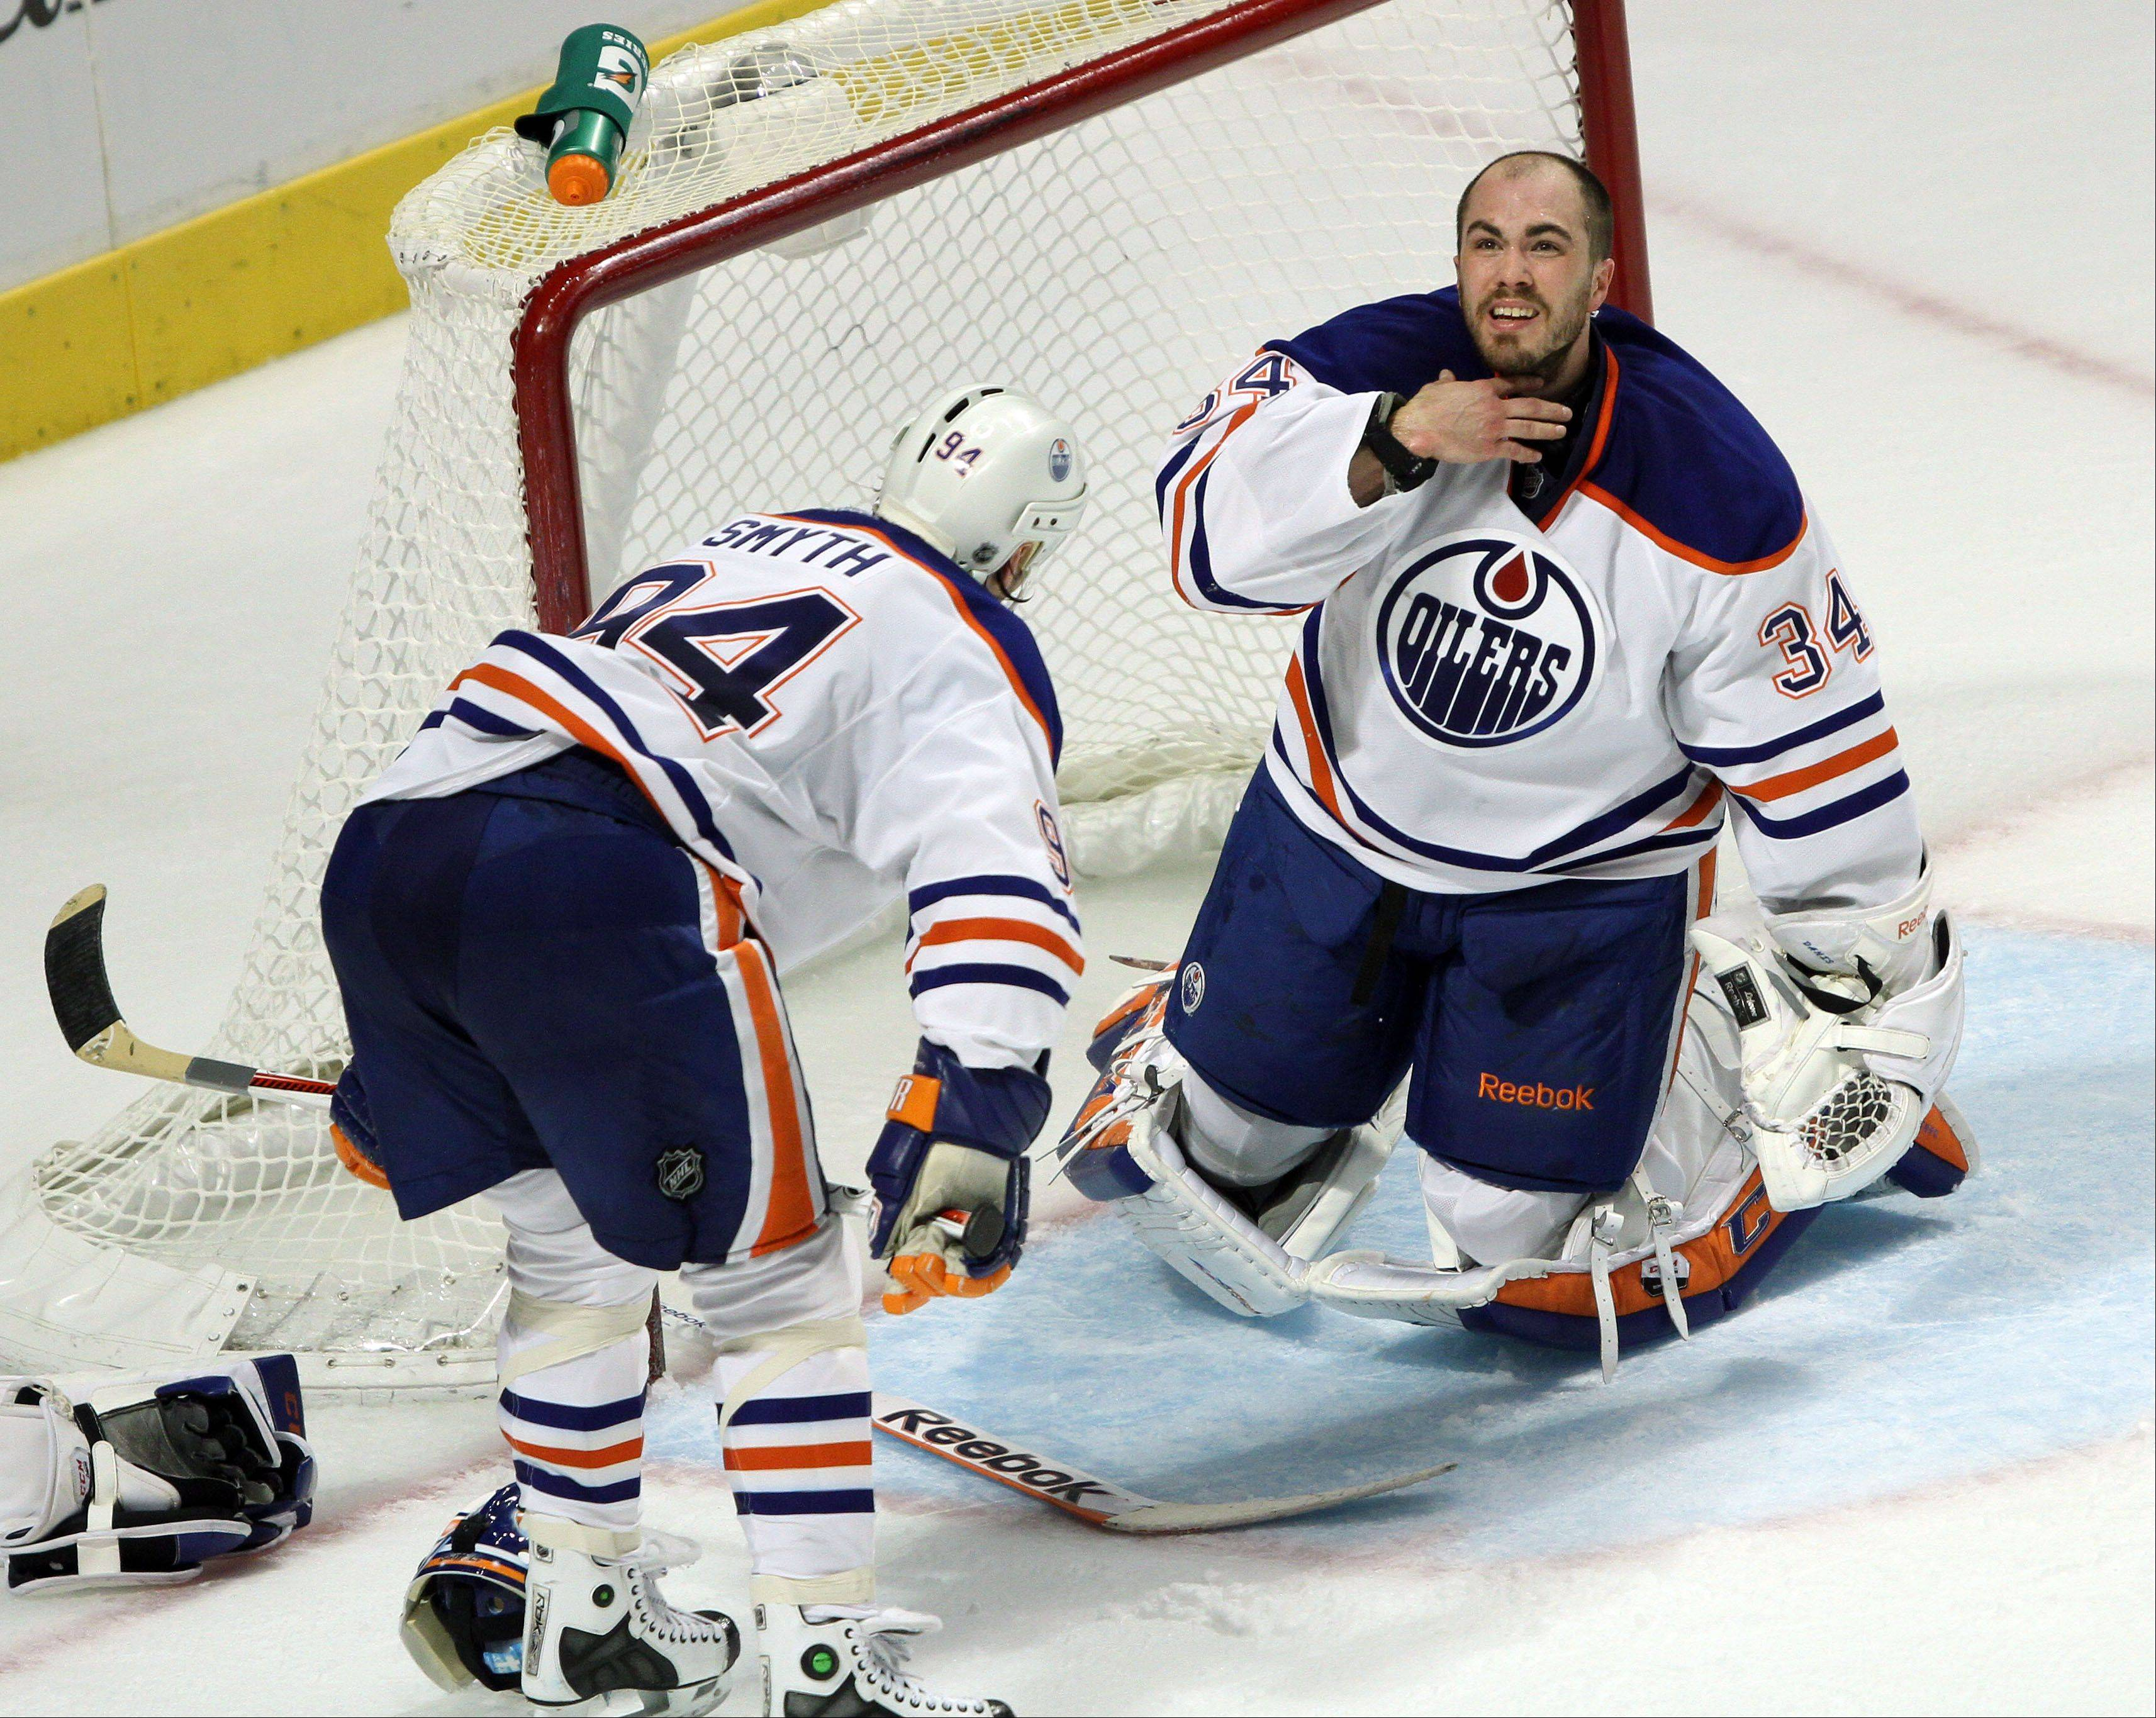 Edmonton Oilers goalie Yann Danis holds his neck after Chicago Blackhawks right wing Marian Hossa collided with him during their game Sunday night at the United Center in Chicago.